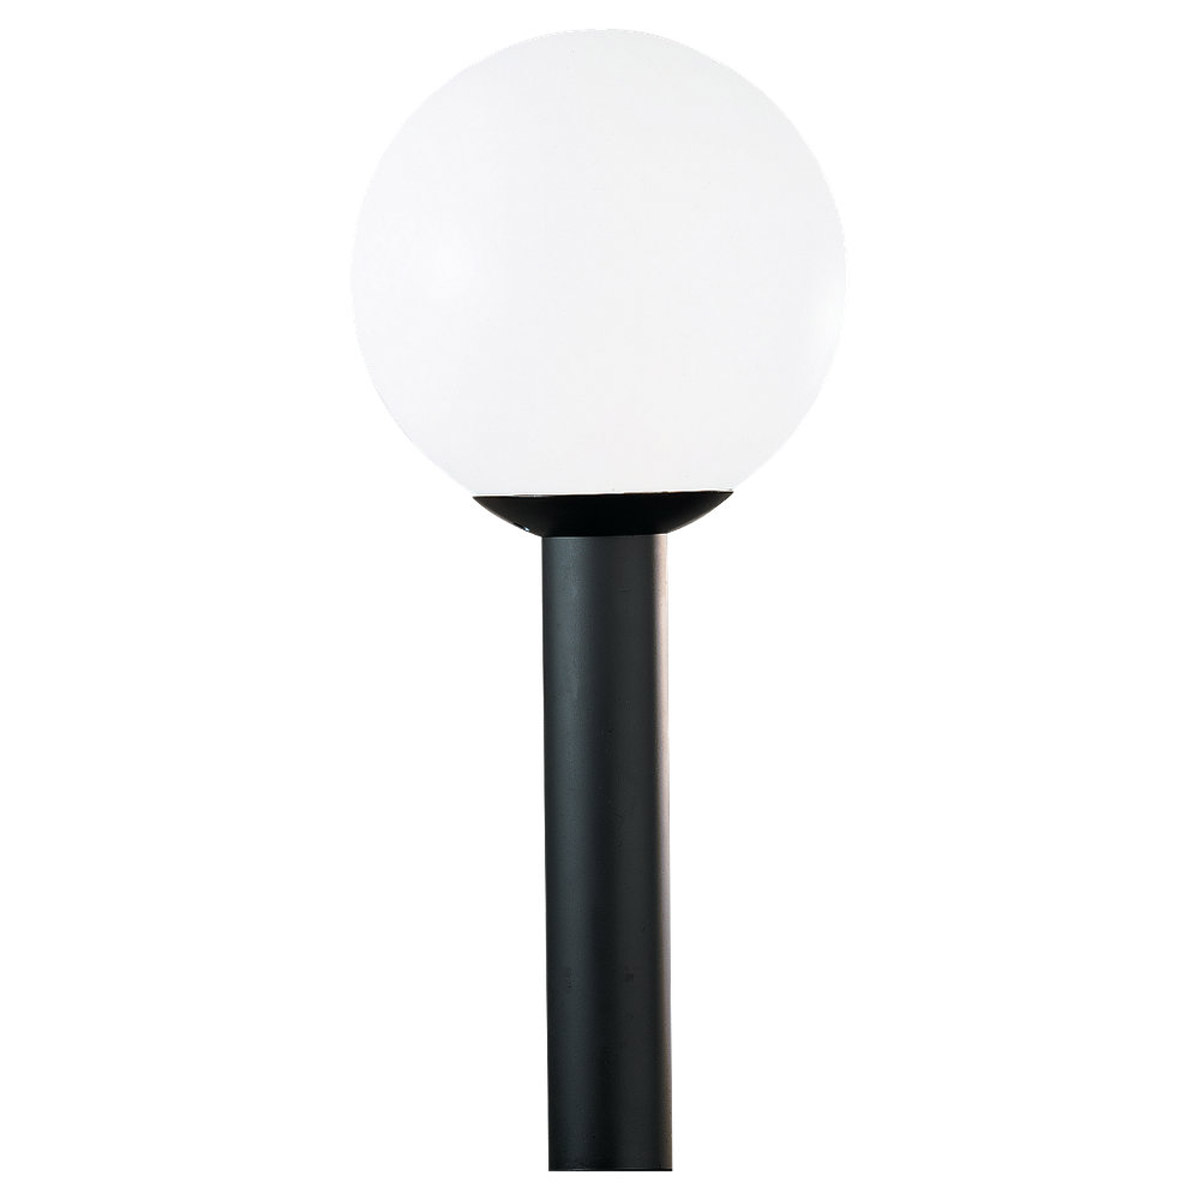 Sea Gull 8252 68 Outdoor Globe 1 Light 13 Inch White Plastic Post Lantern